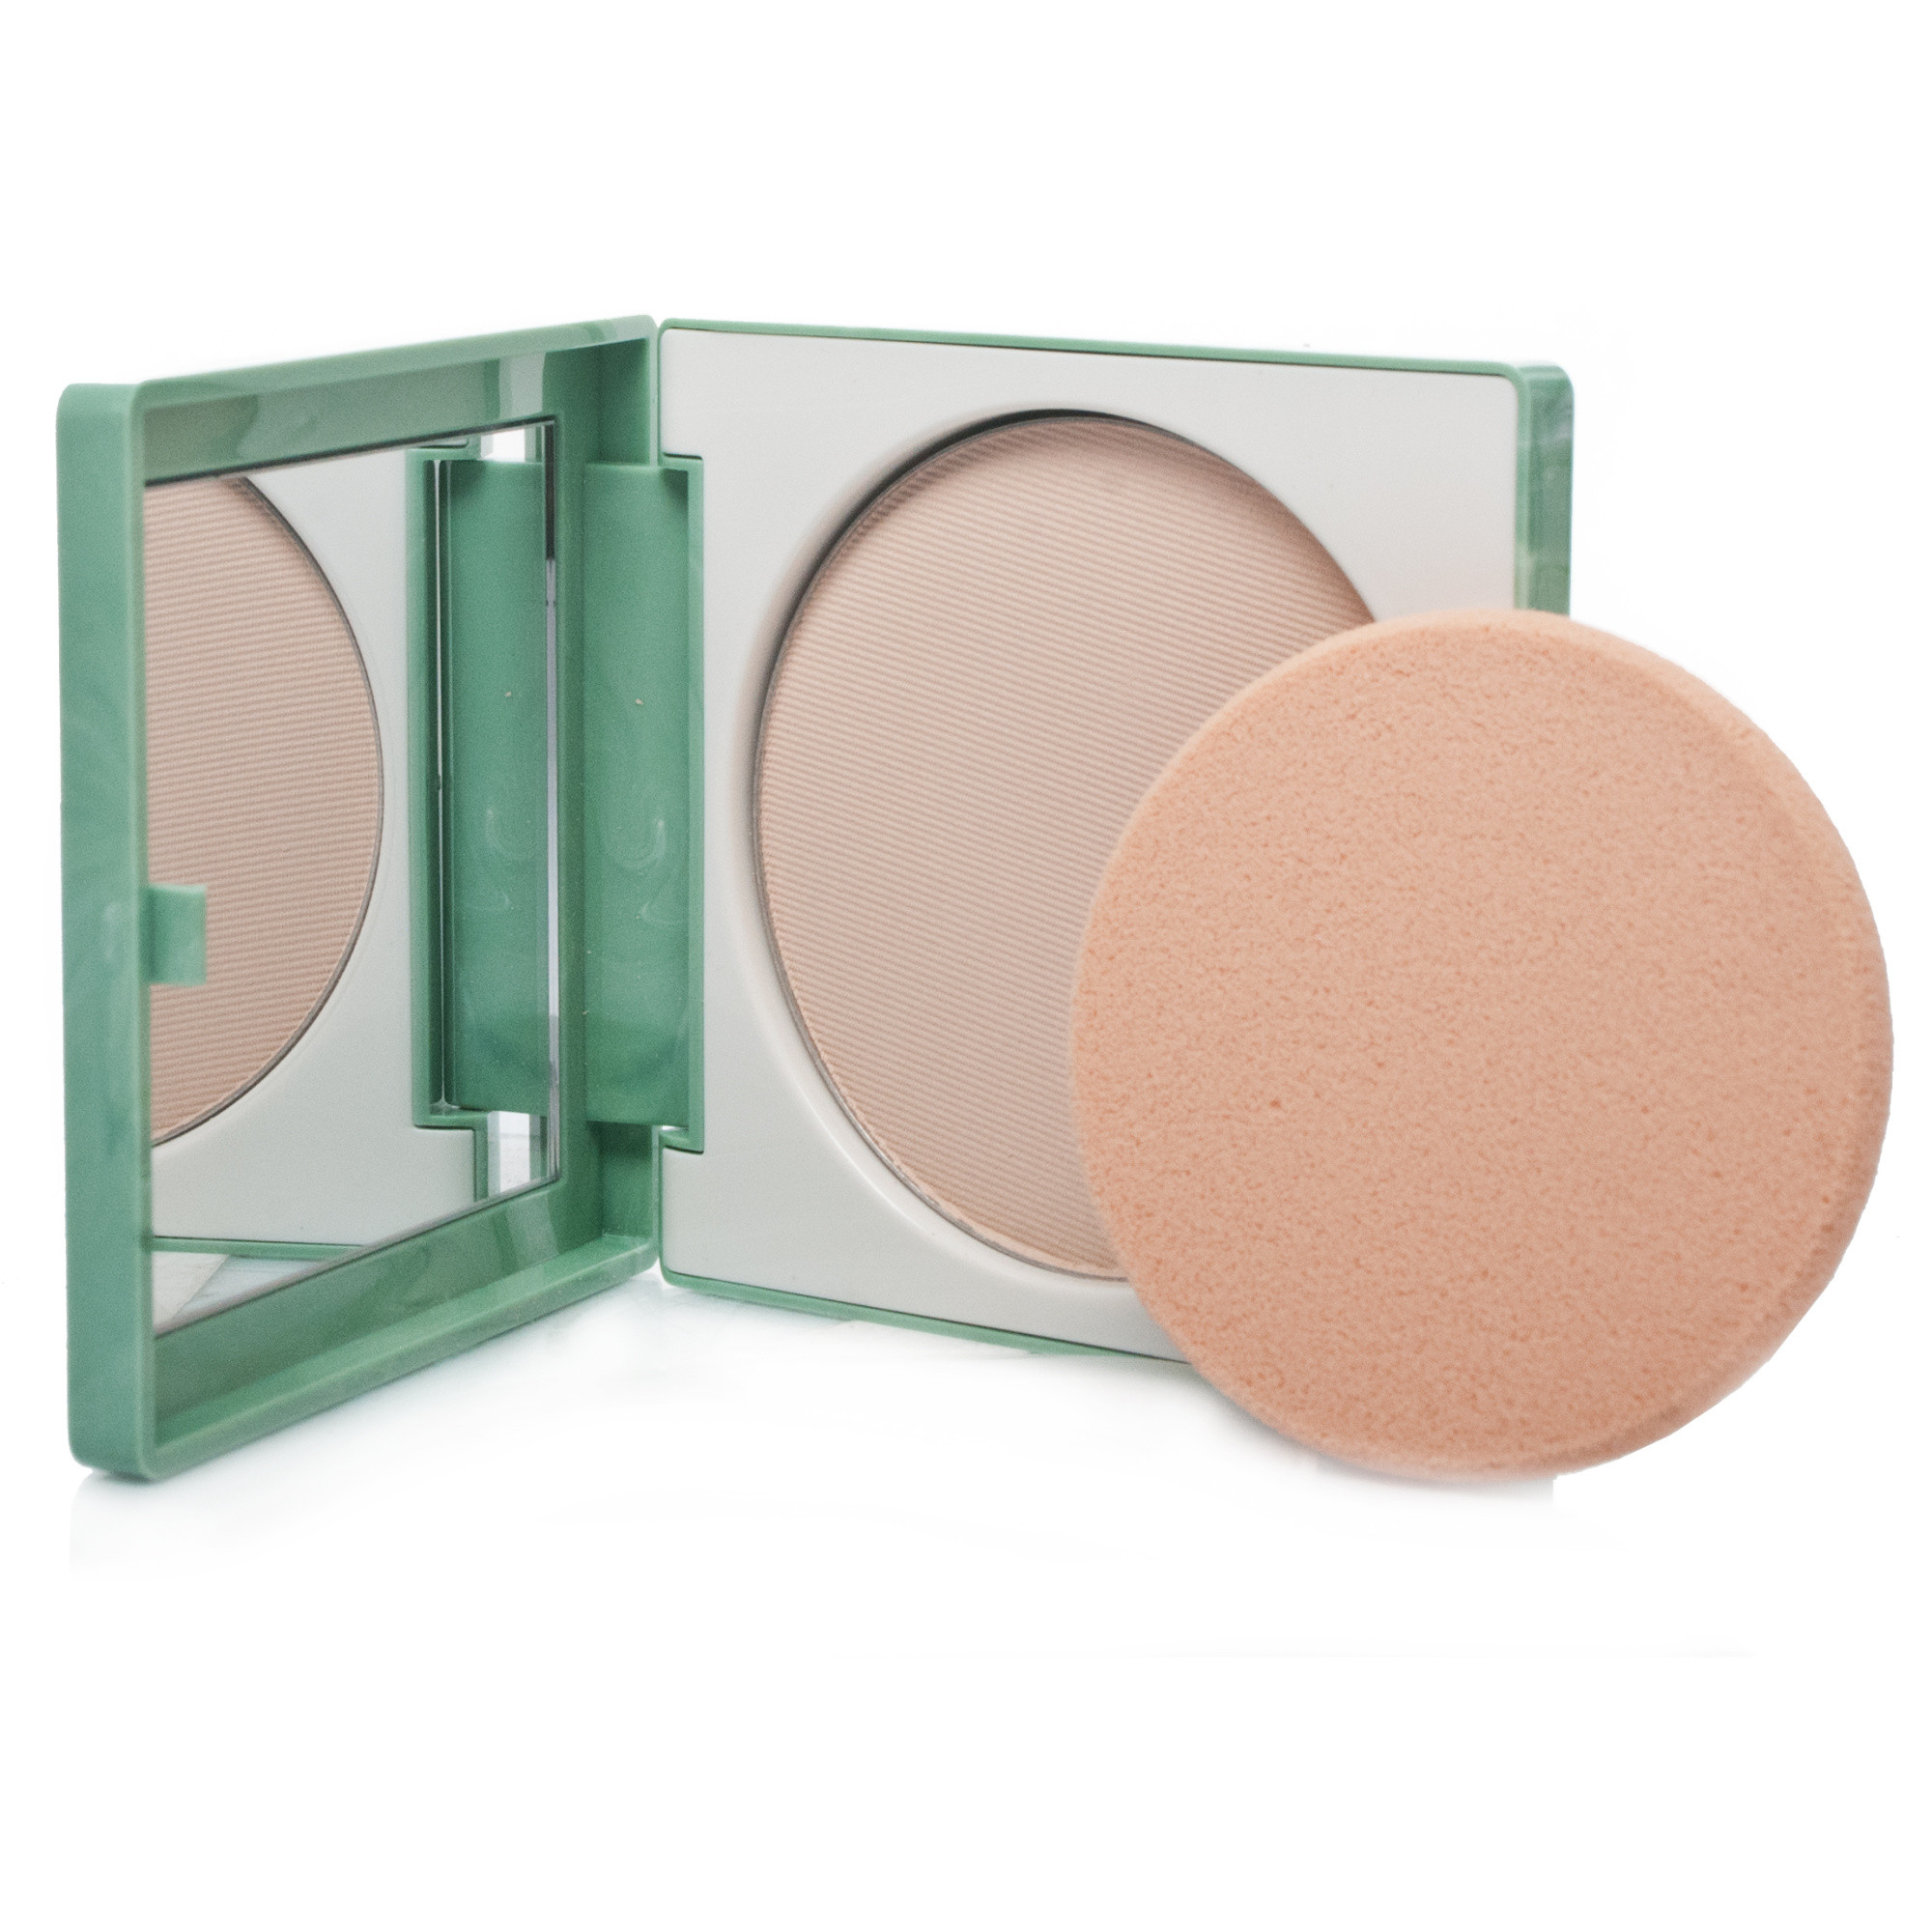 Clinique Stay Matte Sheer Pressed Powder Buff